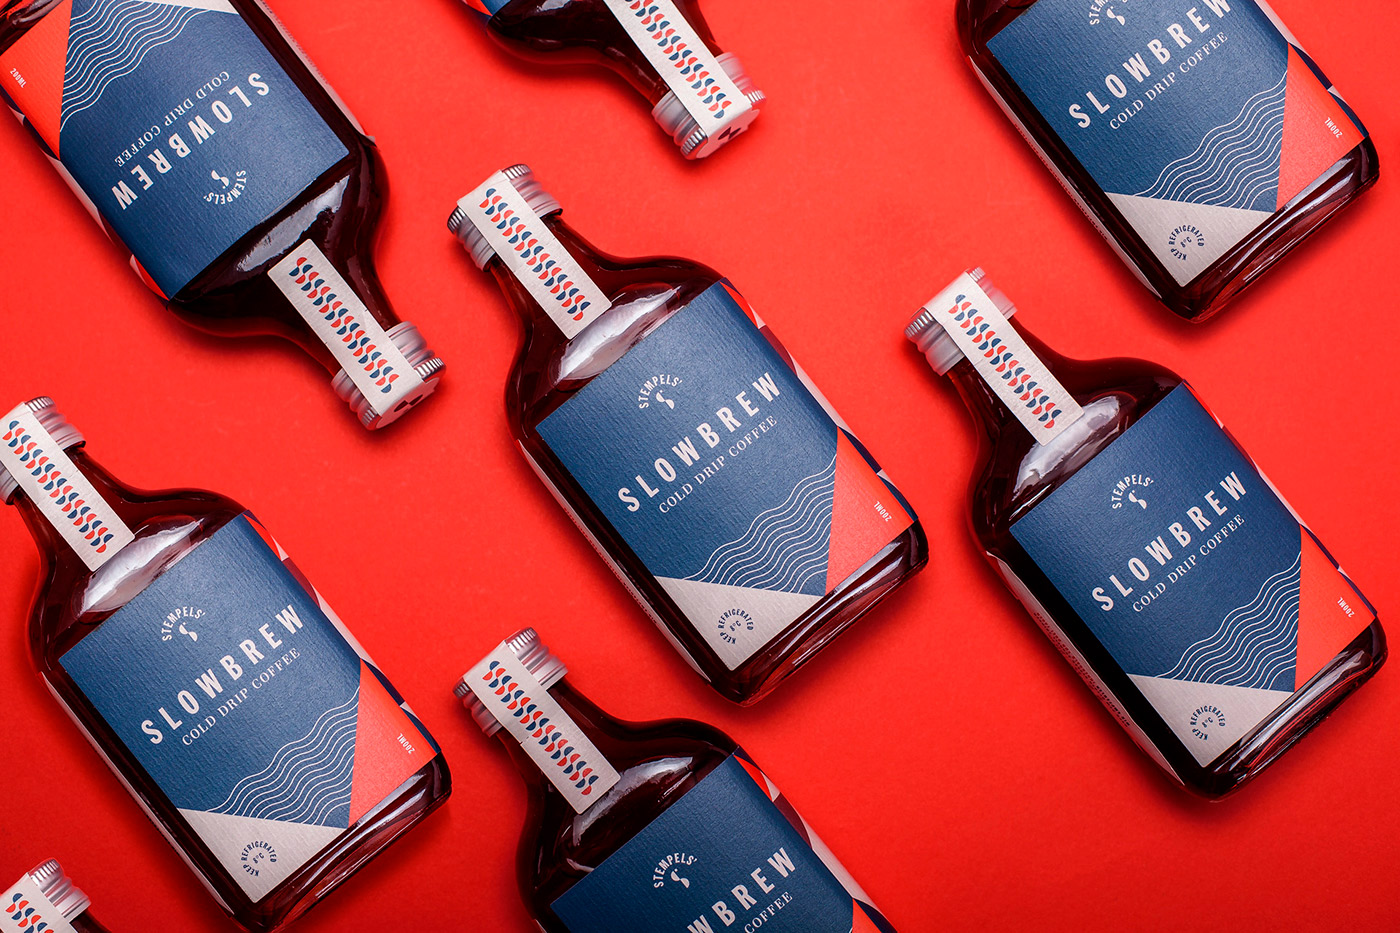 Branding & Packaging Design Inspiration for Tasty Cold Drip Coffee